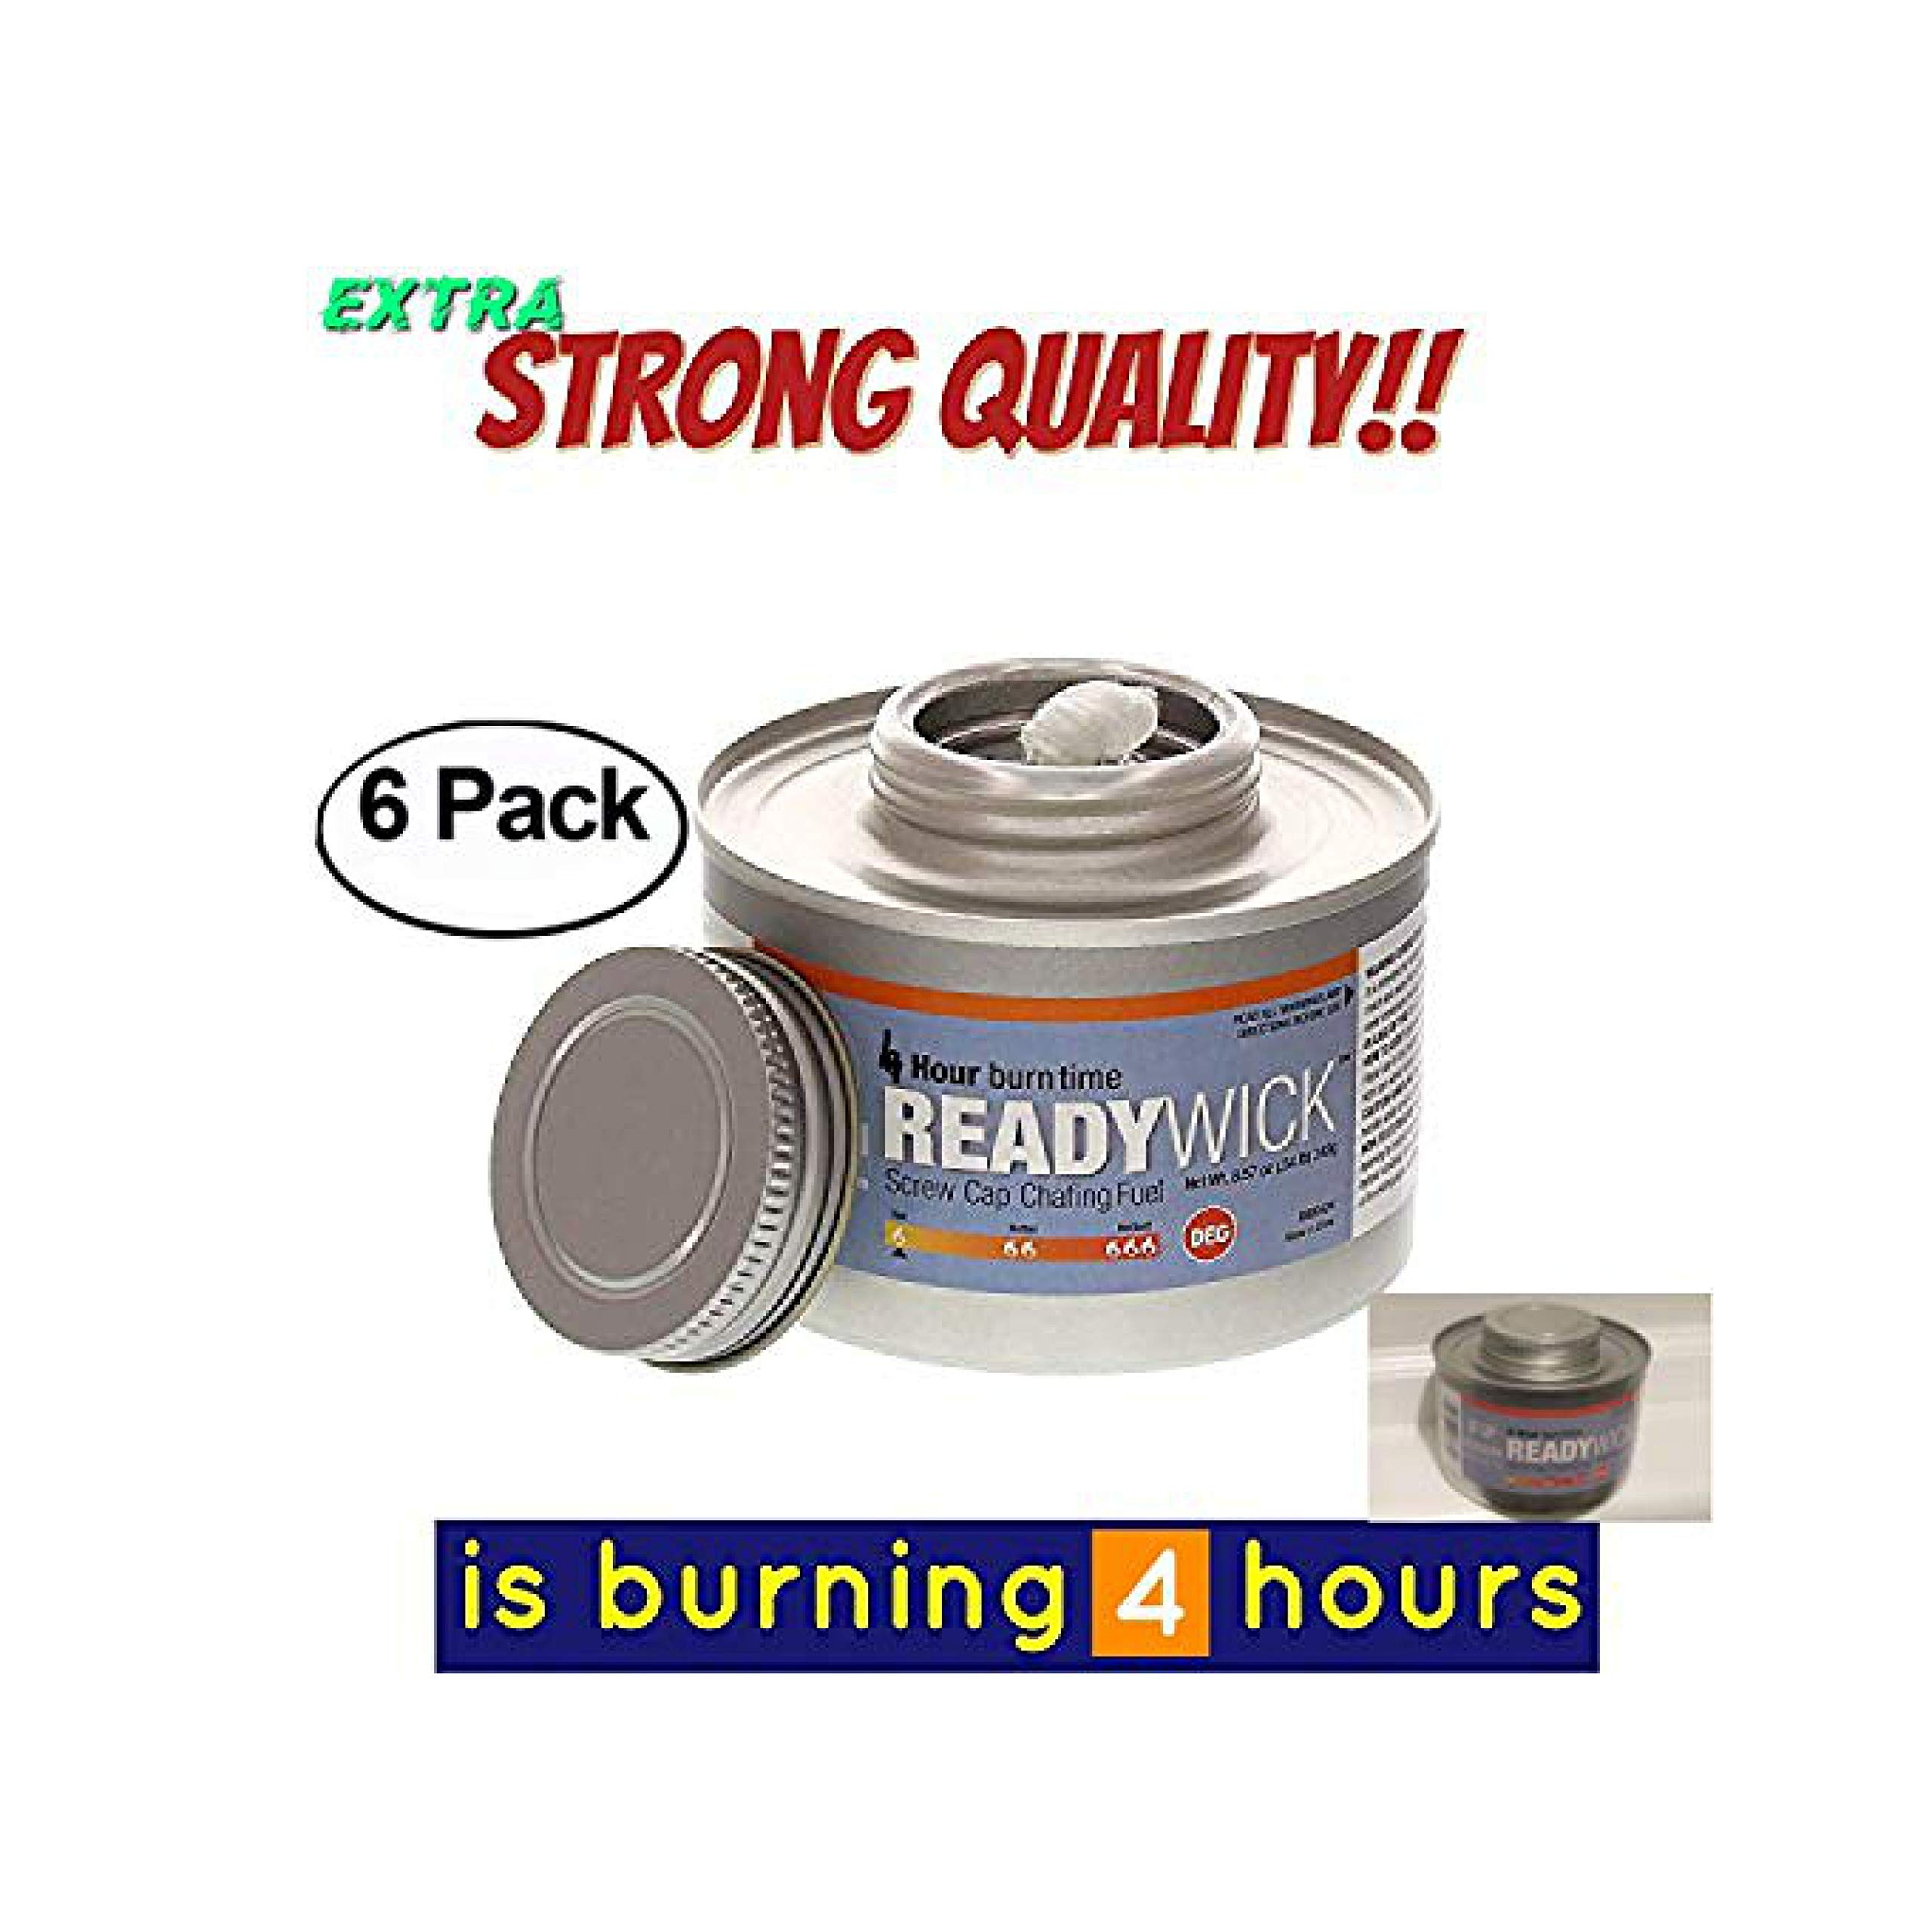 chafing fuel 4 hour,Chafing Gel Dish Fuel 6 Cans, Entertainment Cooking Fuel gel fuel cans, 4 hours cooking fuel cans, cooking fuel gel (6, 4 Hour)